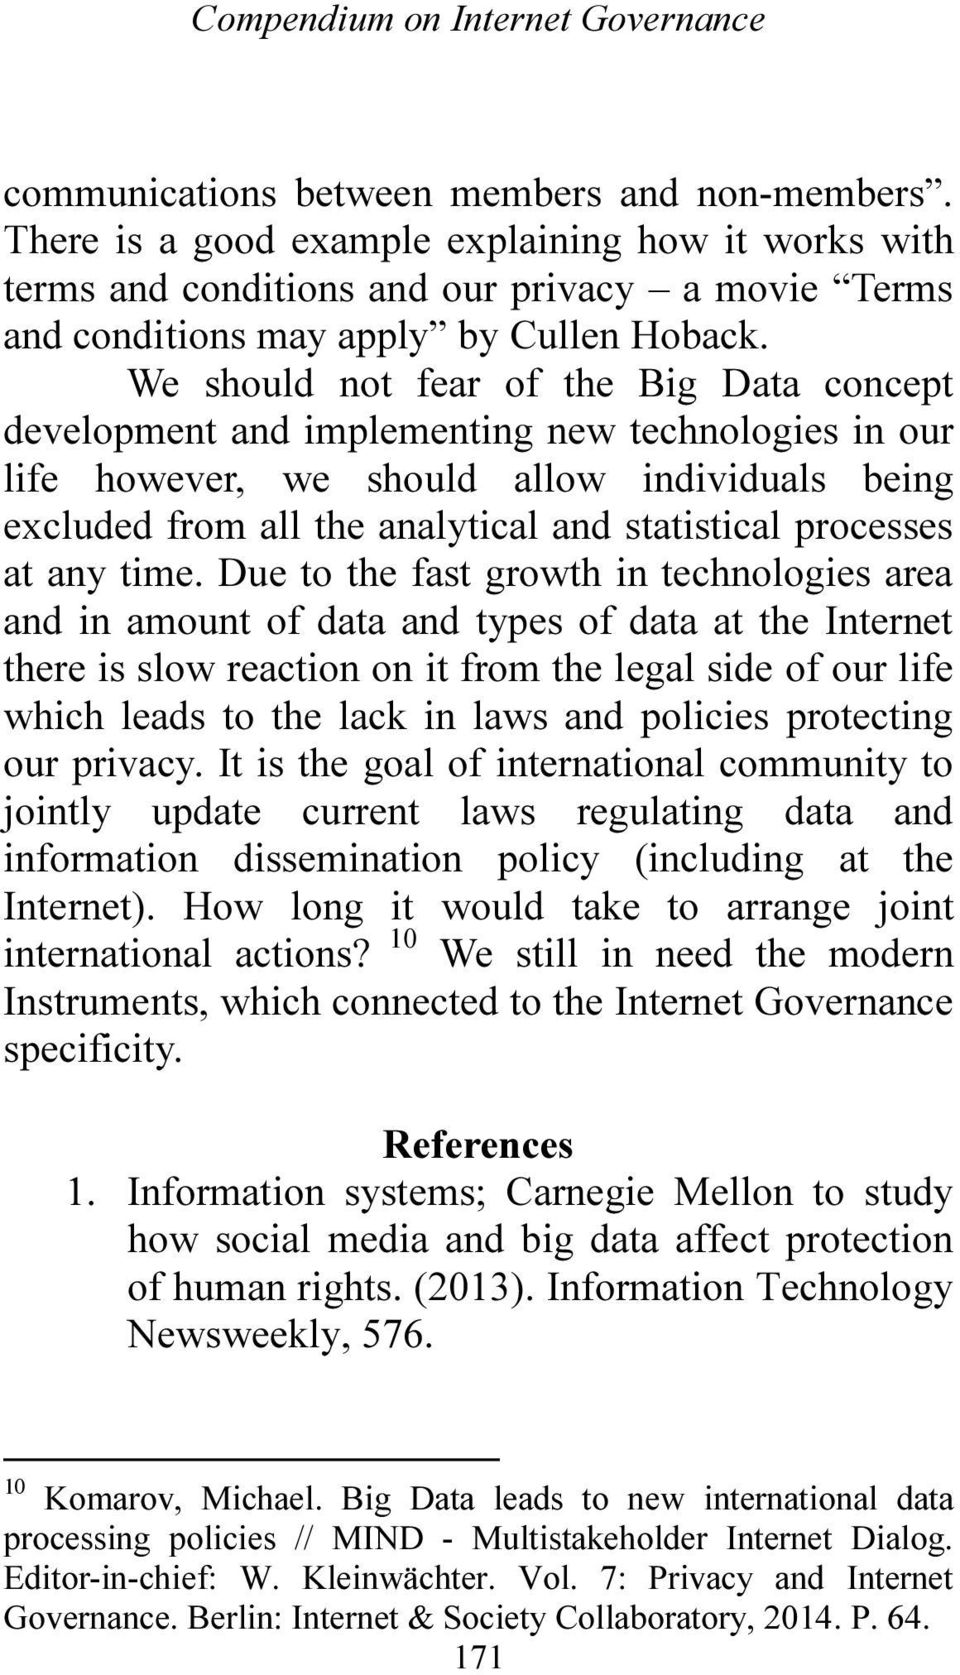 We should not fear of the Big Data concept development and implementing new technologies in our life however, we should allow individuals being excluded from all the analytical and statistical